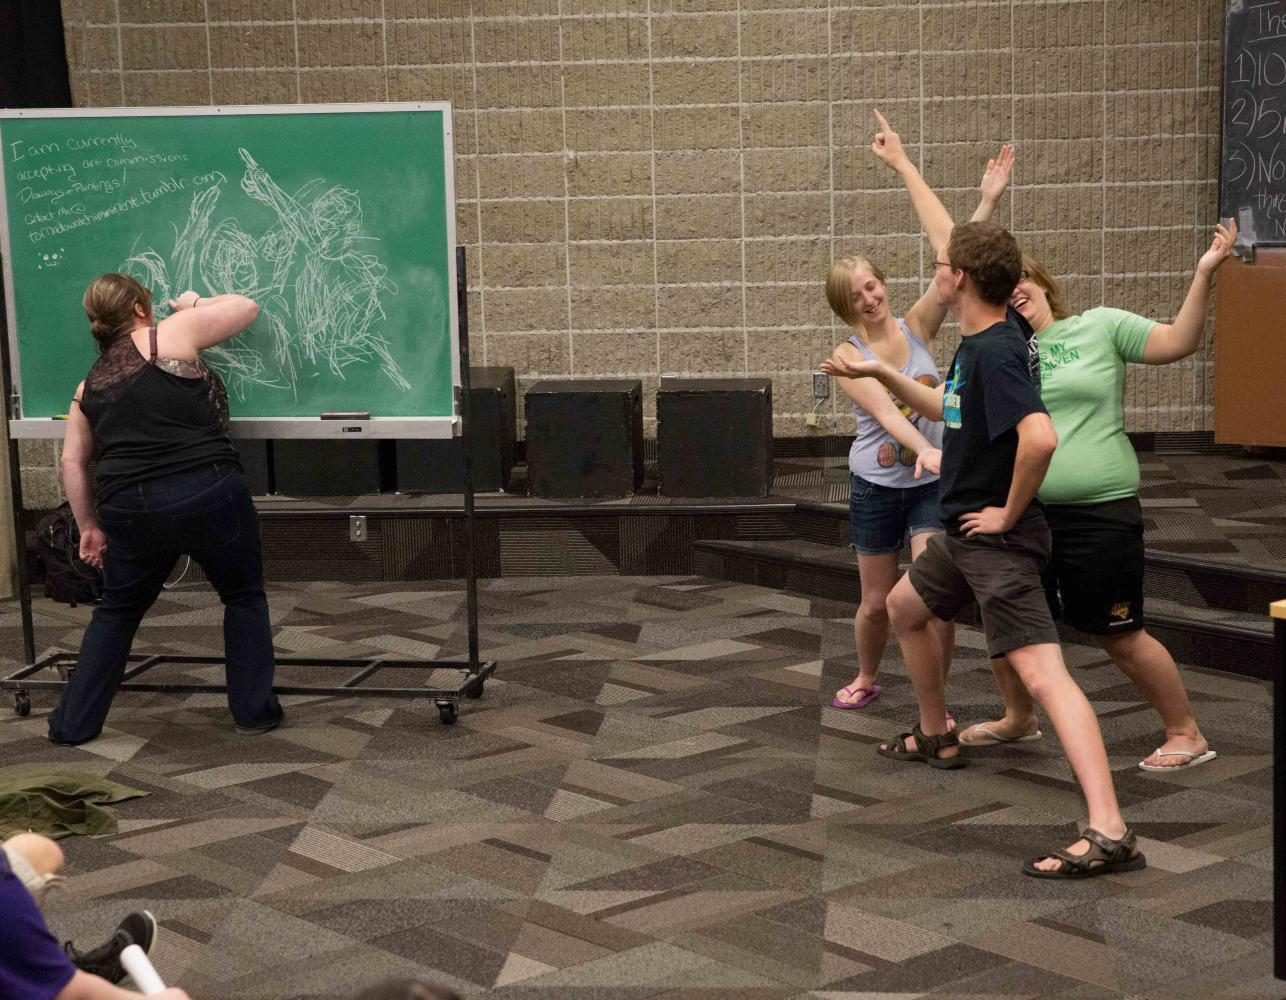 Students gathered in the Communication Arts Center to take part in a